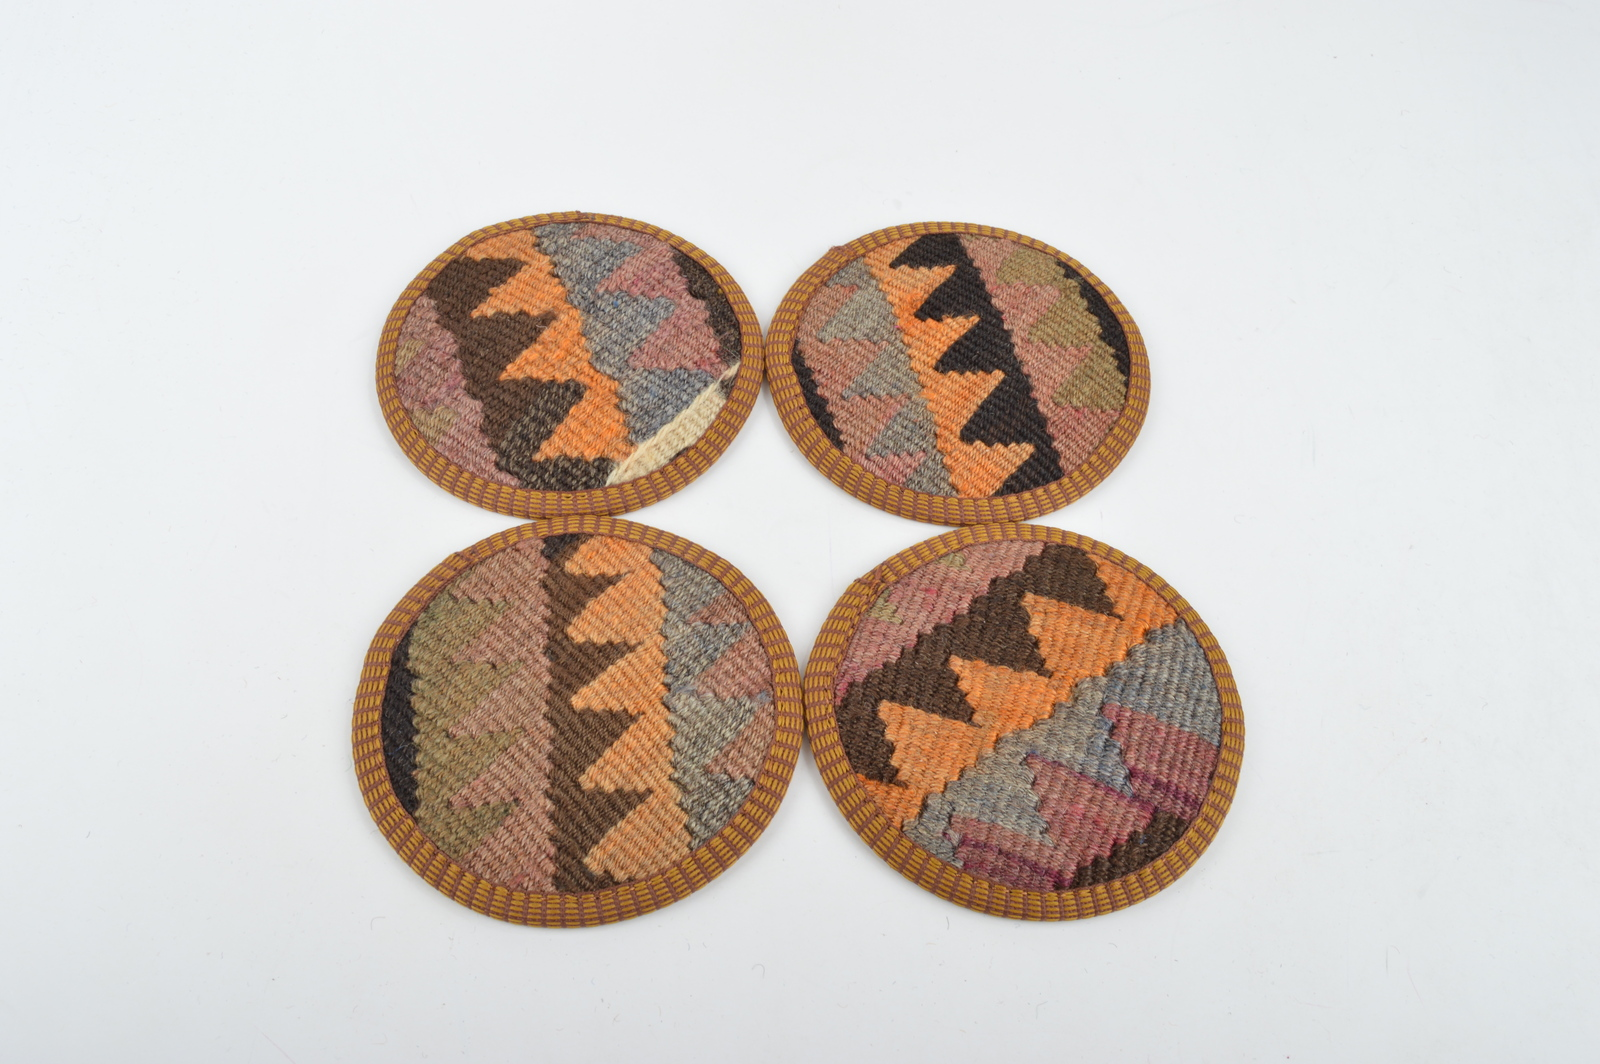 rug wool coasters,wool coasters,rug coasters,coffee table accents,coasters